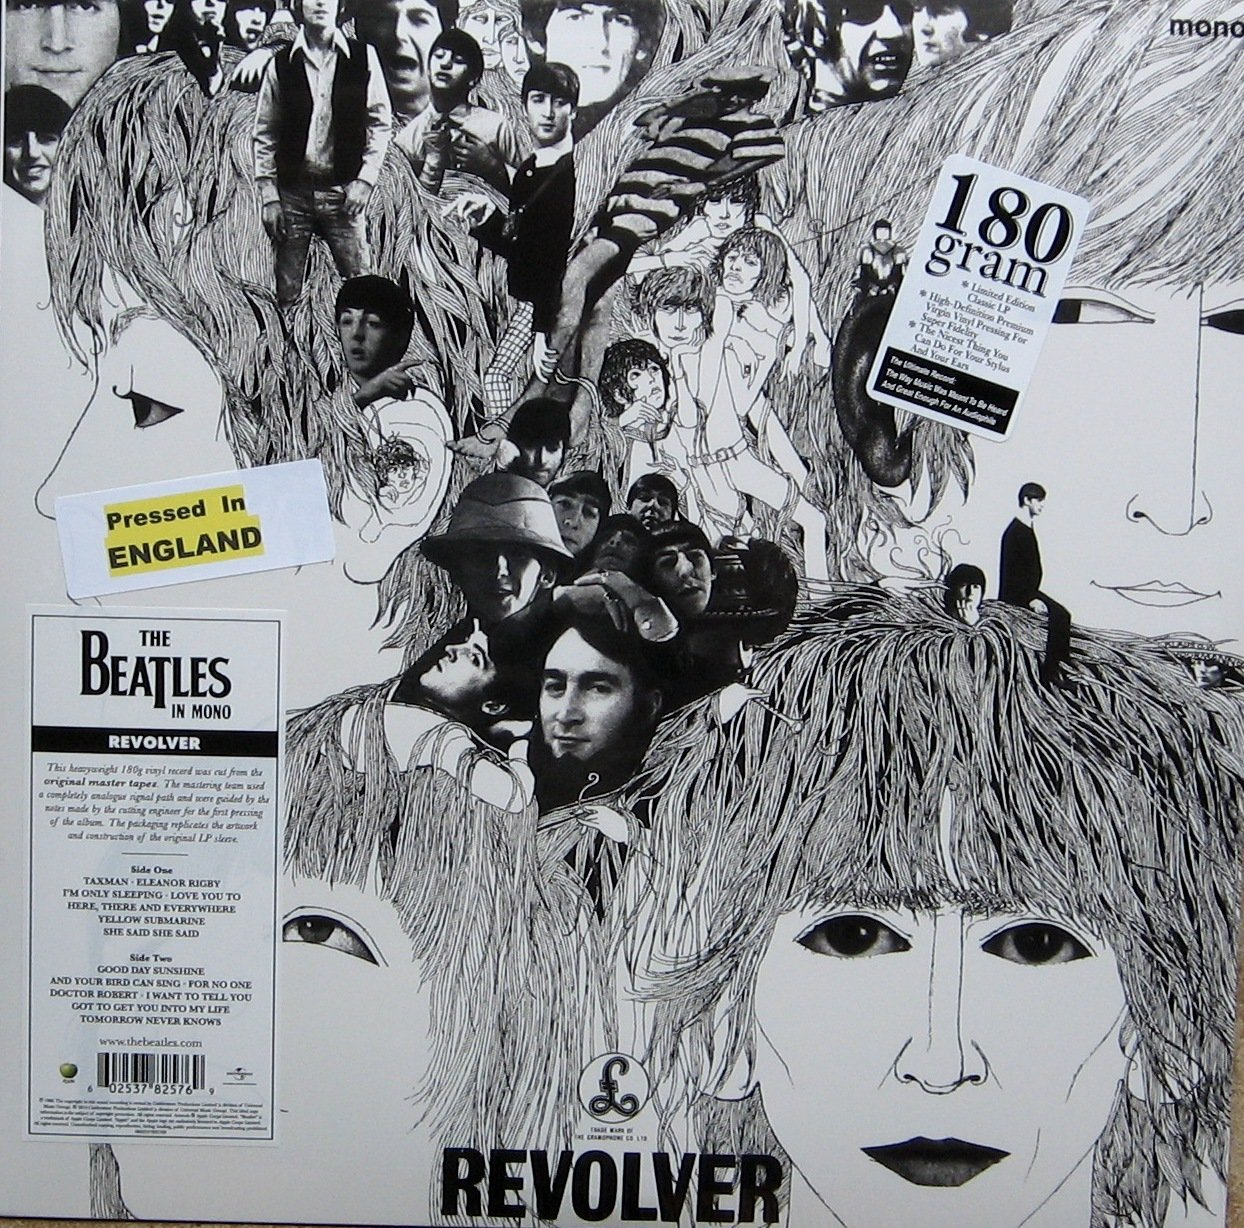 The Beatles - Revolver [Remastered] [LP] (Vinyl/LP) Deluxe Edition,  Original recording remastered